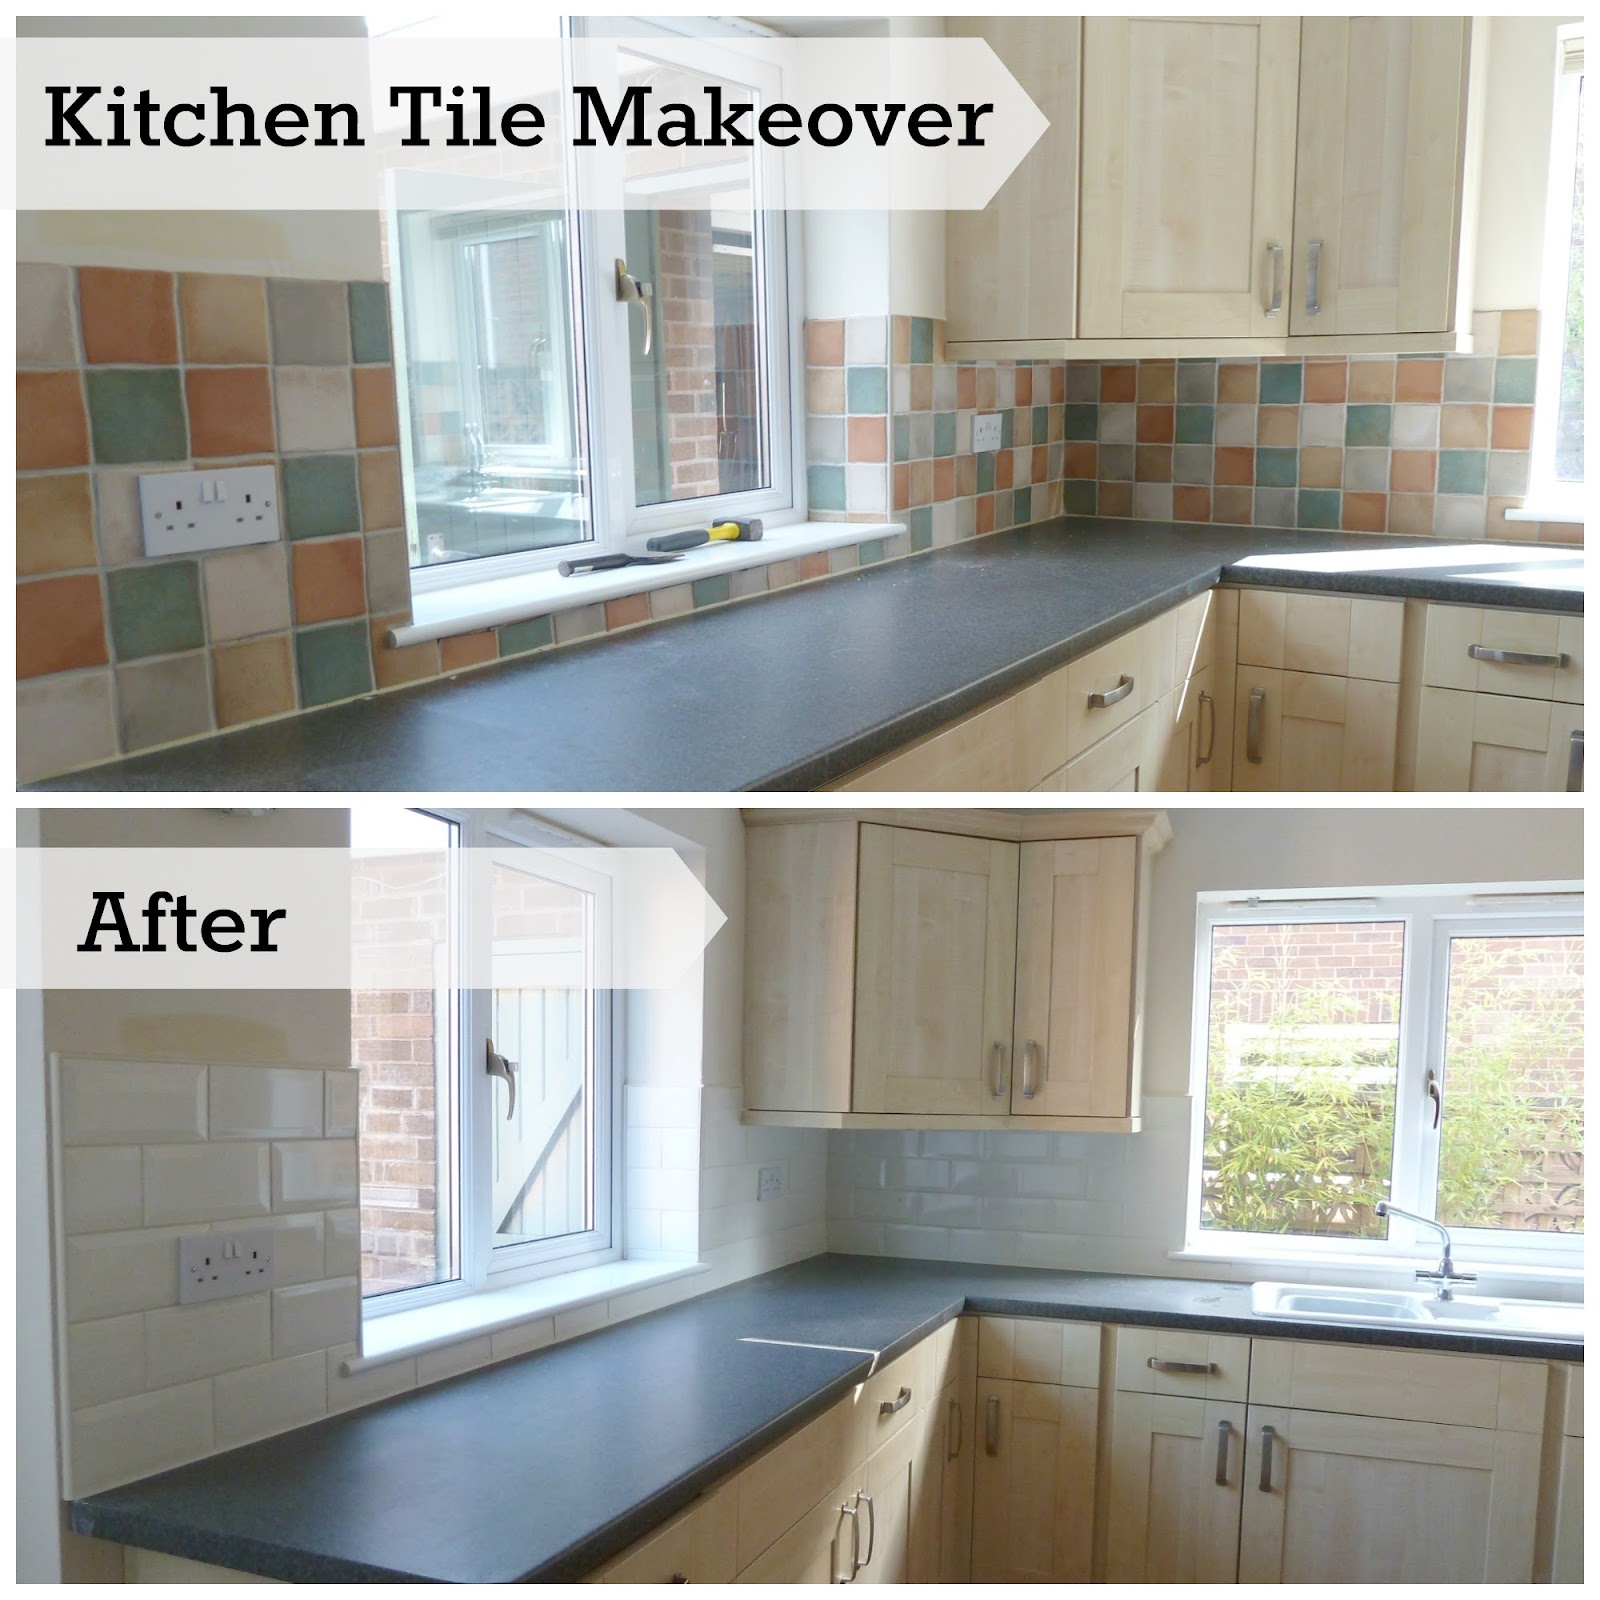 Kitchen makeover changing wall tiles How to put tile on wall in the kitchen